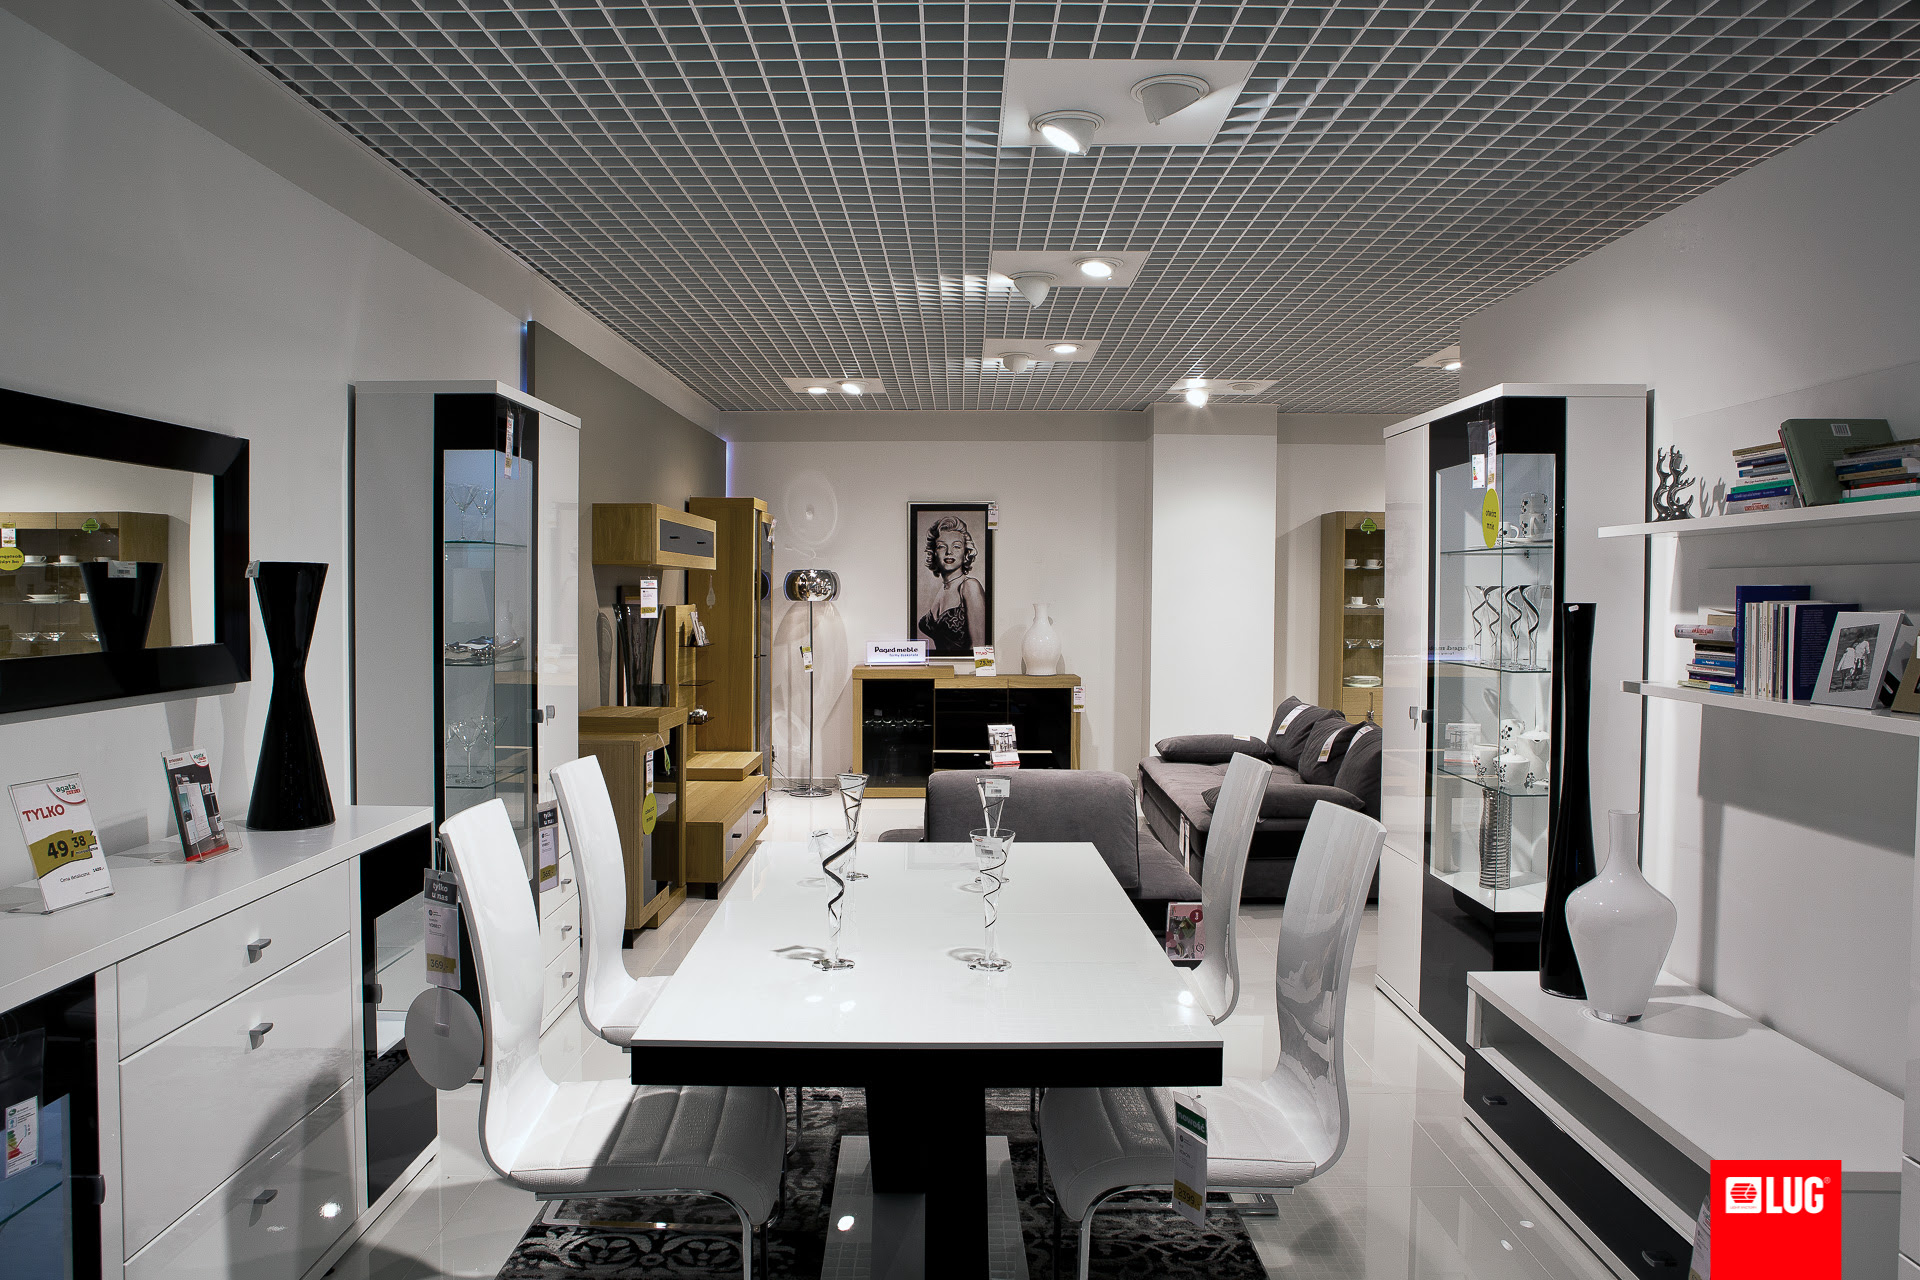 Agata Meble Furniture Showroom Krakow Poland Lug